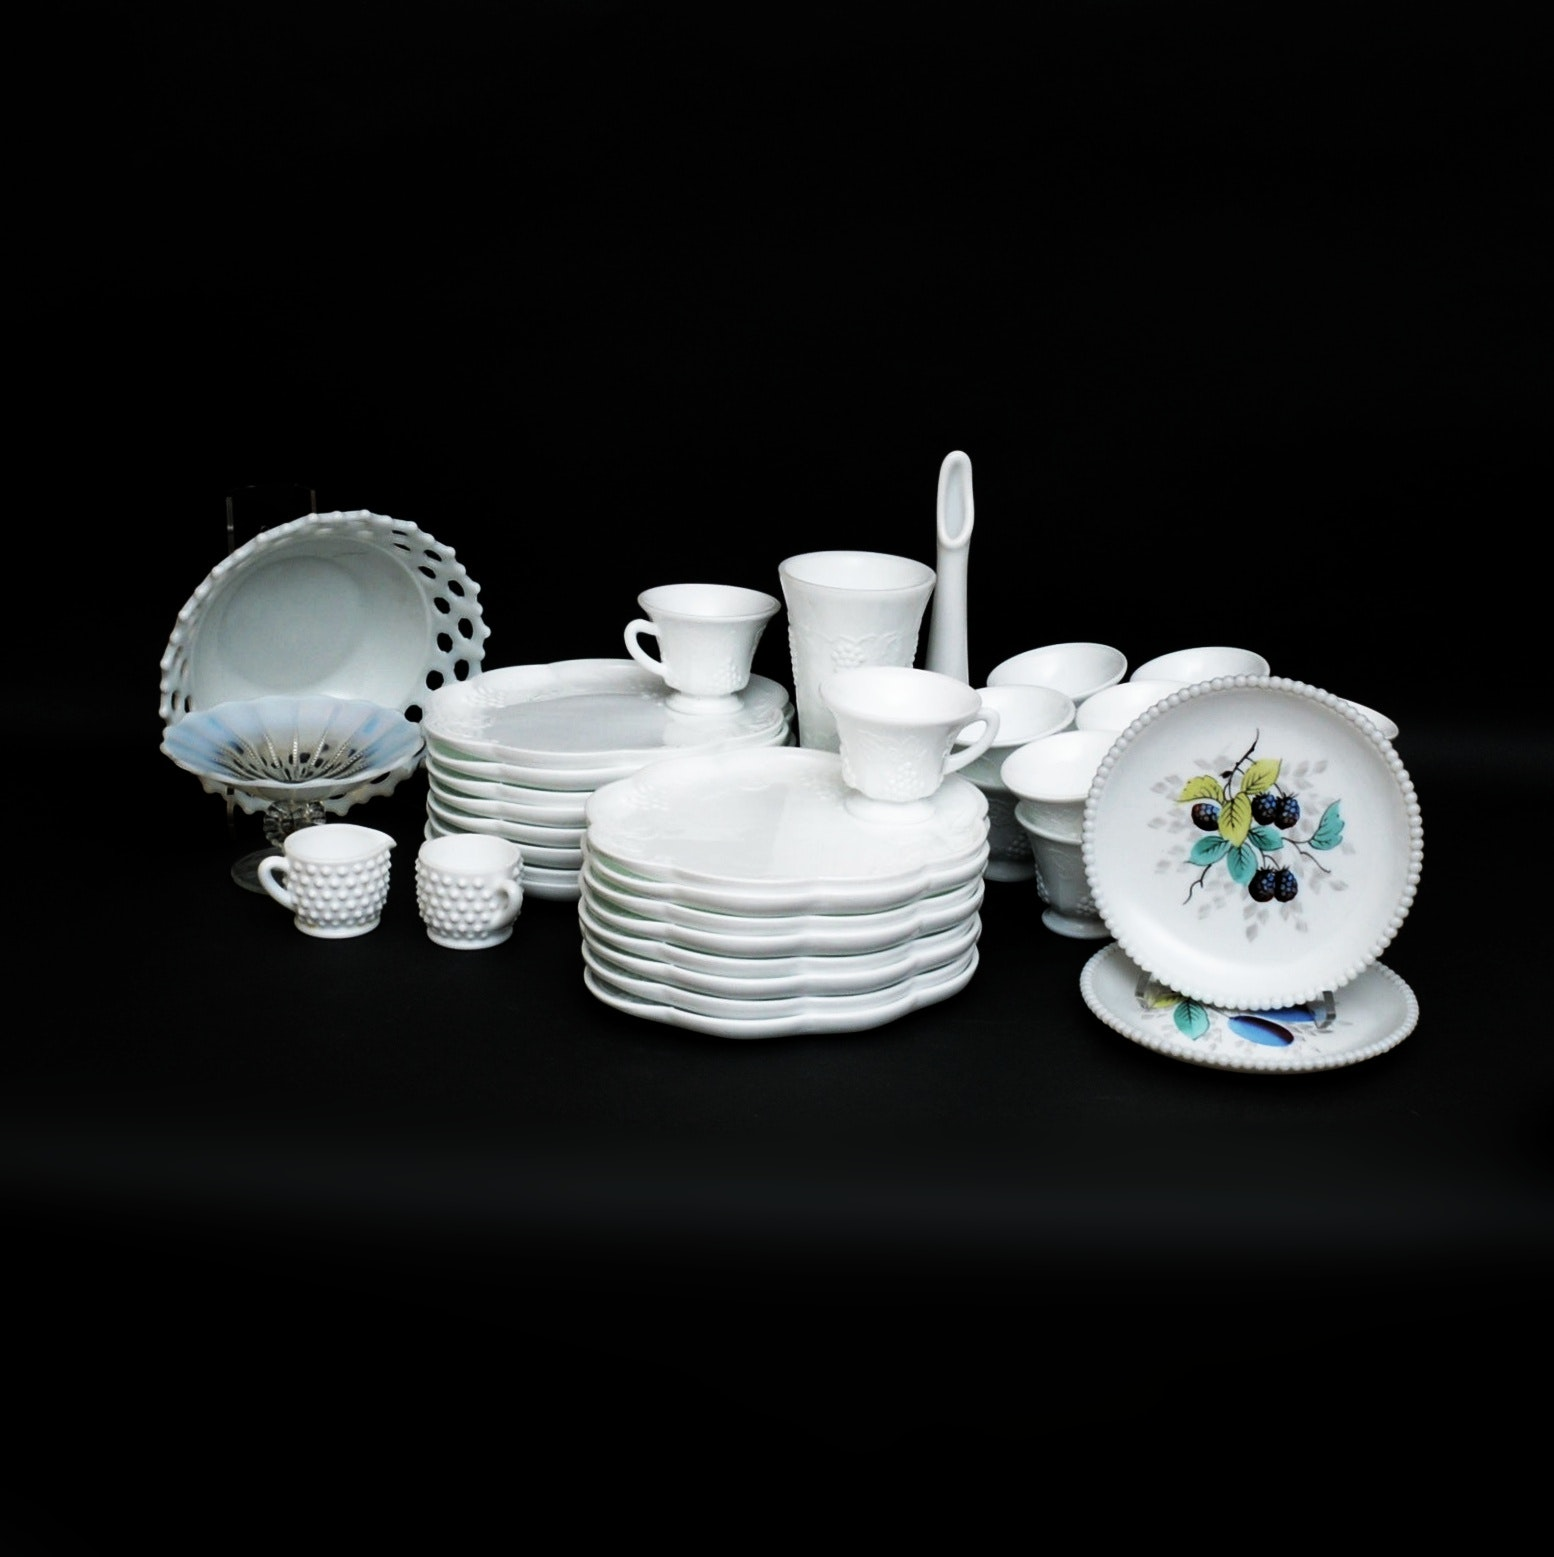 Collection of Milk Glass Luncheon Plates and Cups